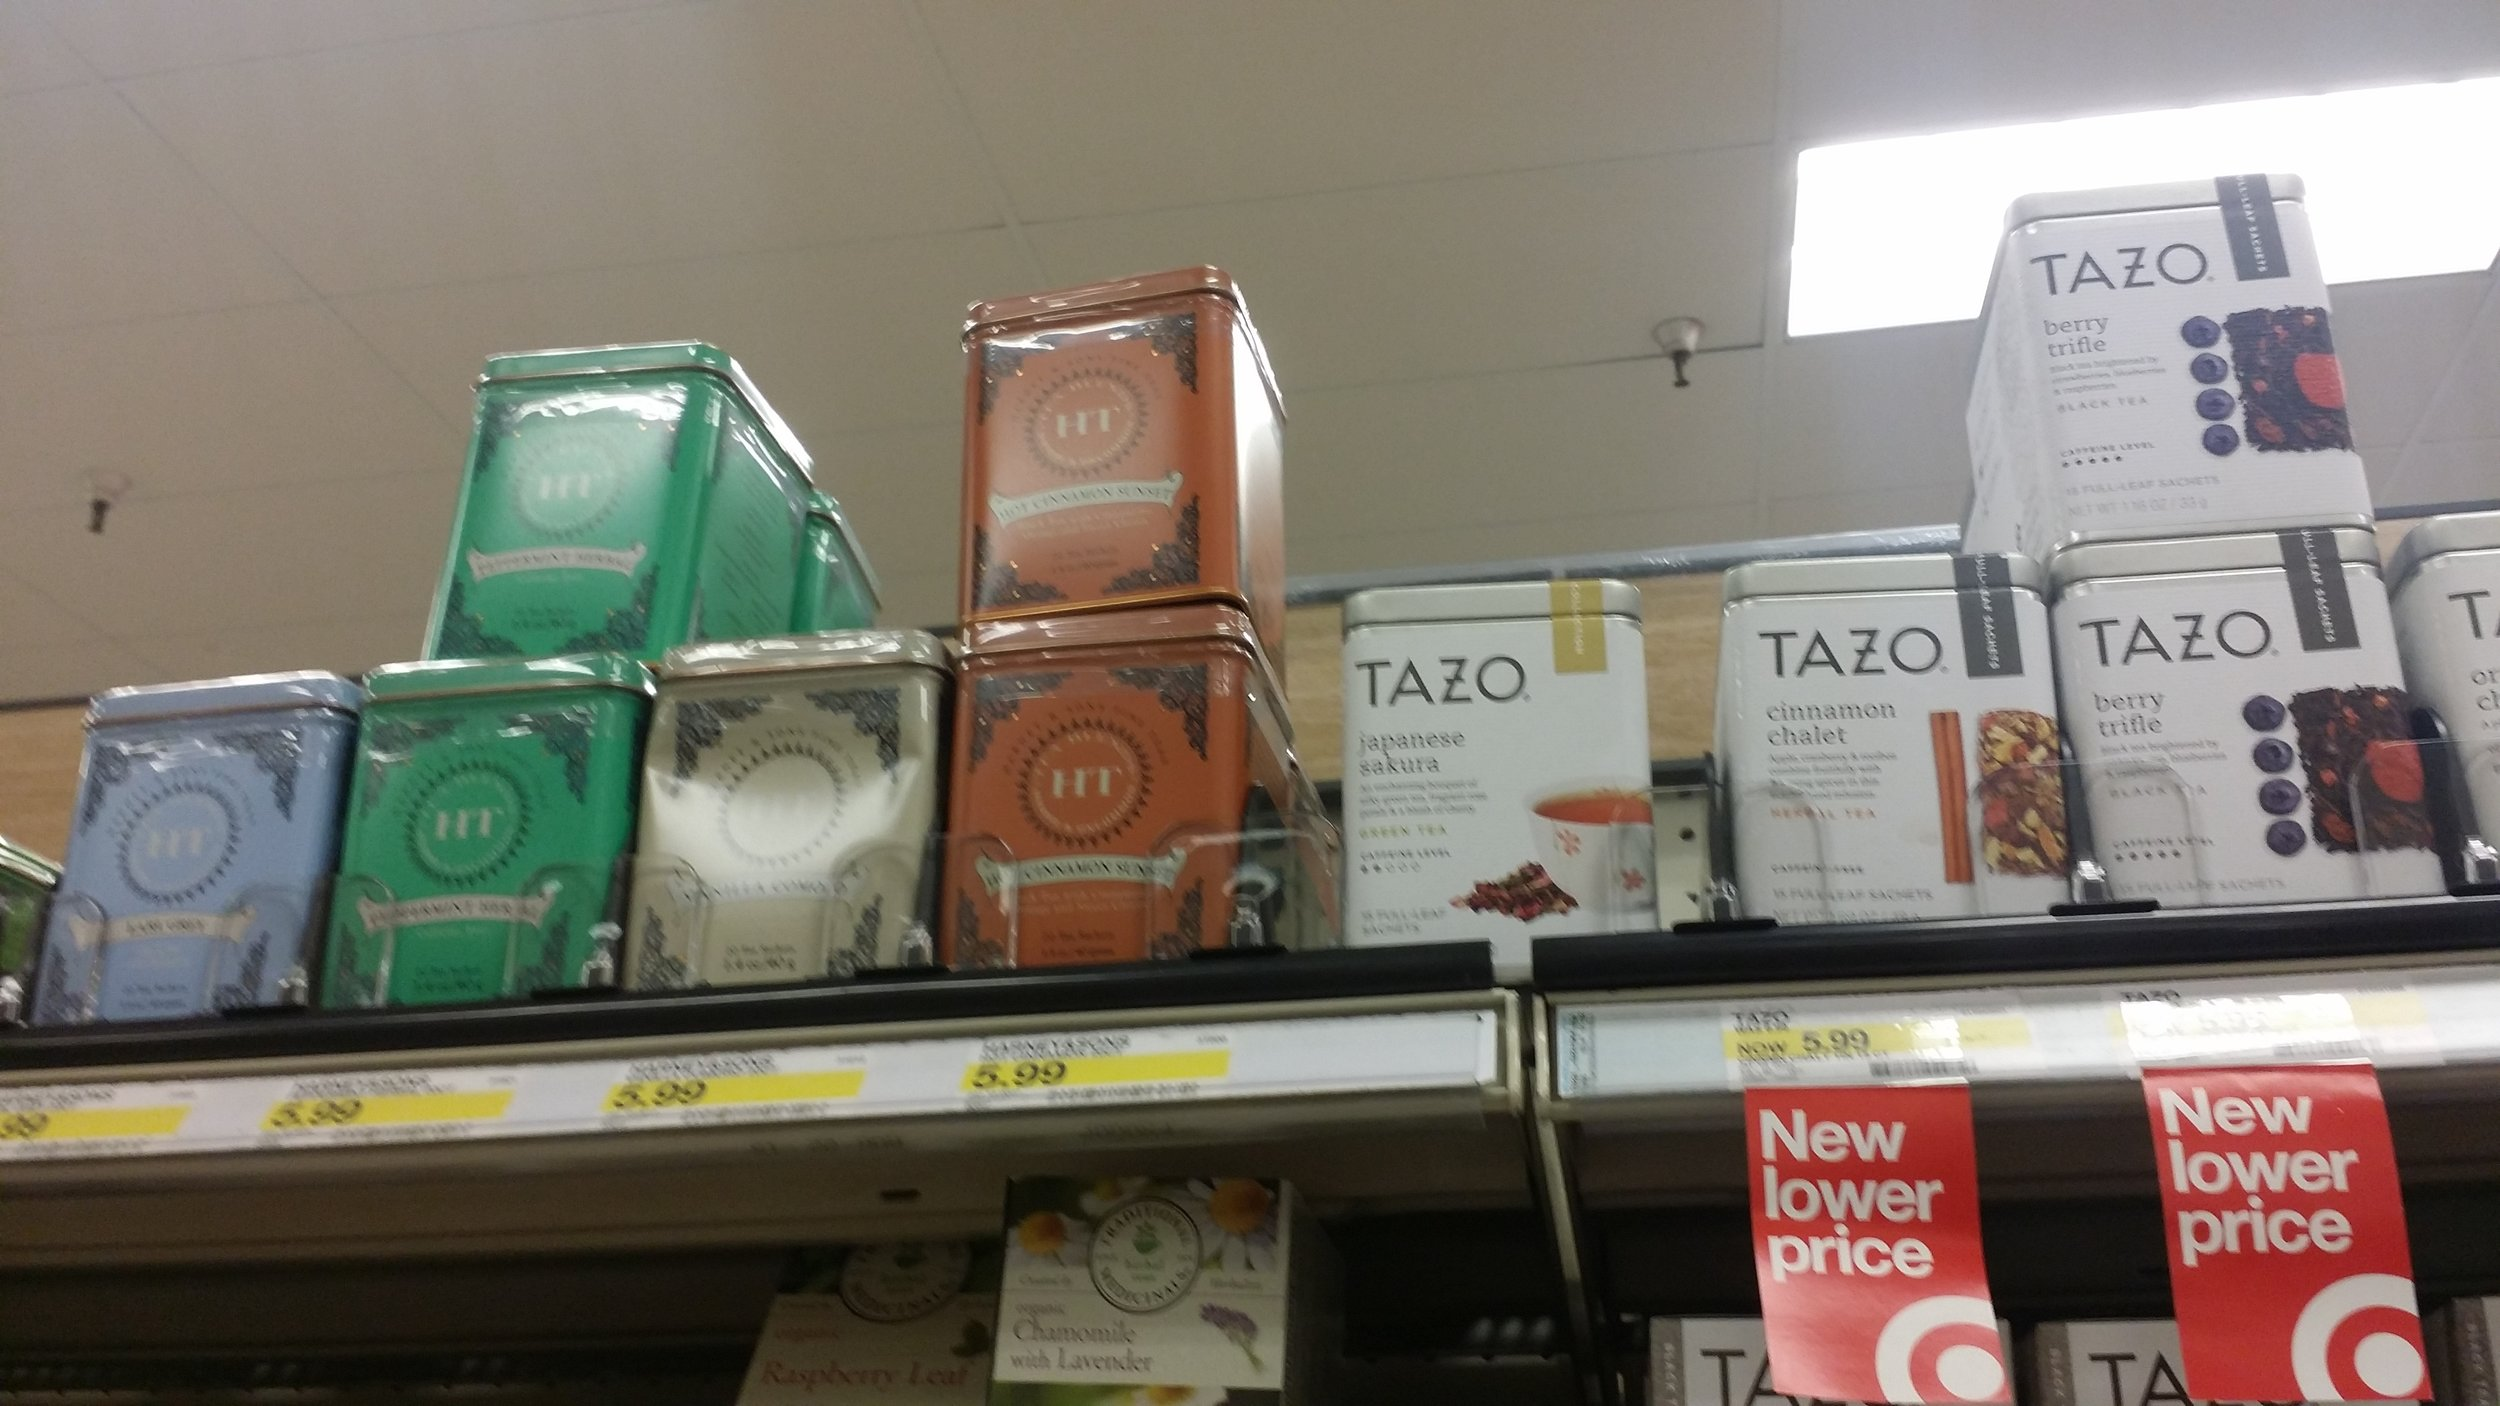 I was surprised to see loose leaf tea tins. The tea most likely is wrapped in plastic on the inside. But, it's way less plastic than individually wrapped tea bags. Most of which have plastic in the tea bag itself making them unable to compost.